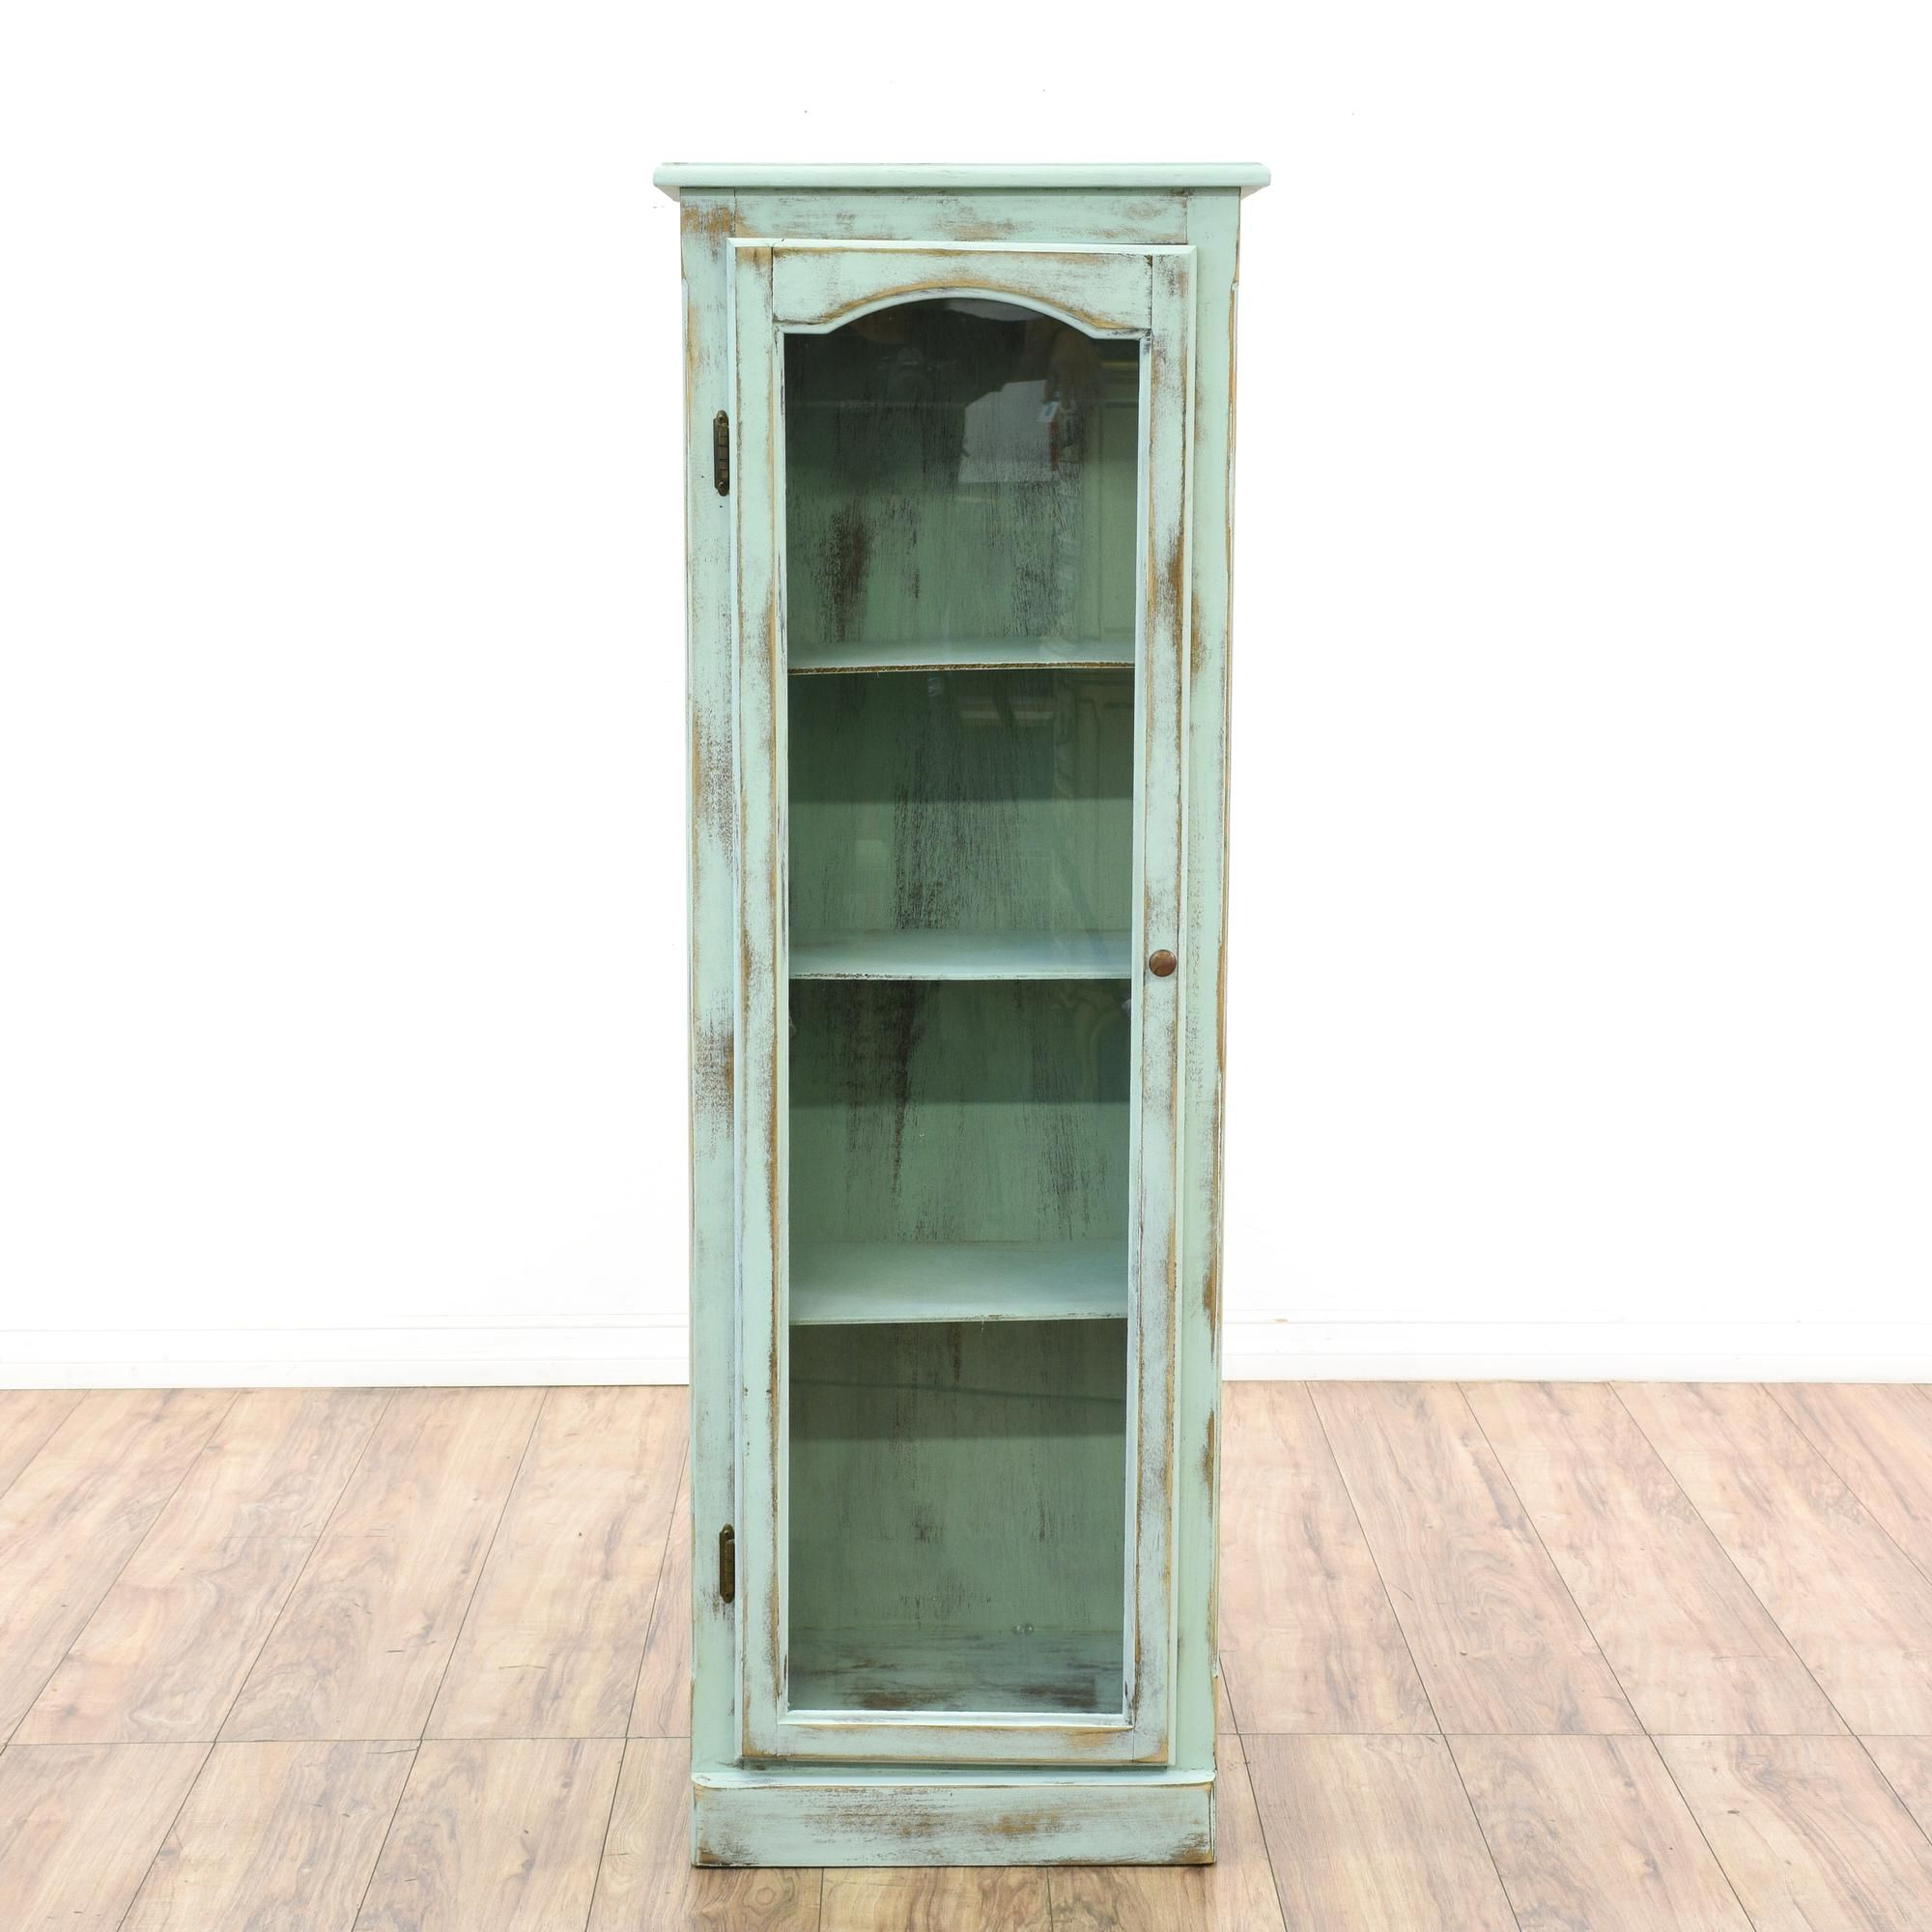 This Shabby Chic Display Cabinet Is Featured In A Solid Wood With A  Distressed Light Blue Chalk Paint Finish. This Curio Cabinet Has A Glass  Front Door With ...